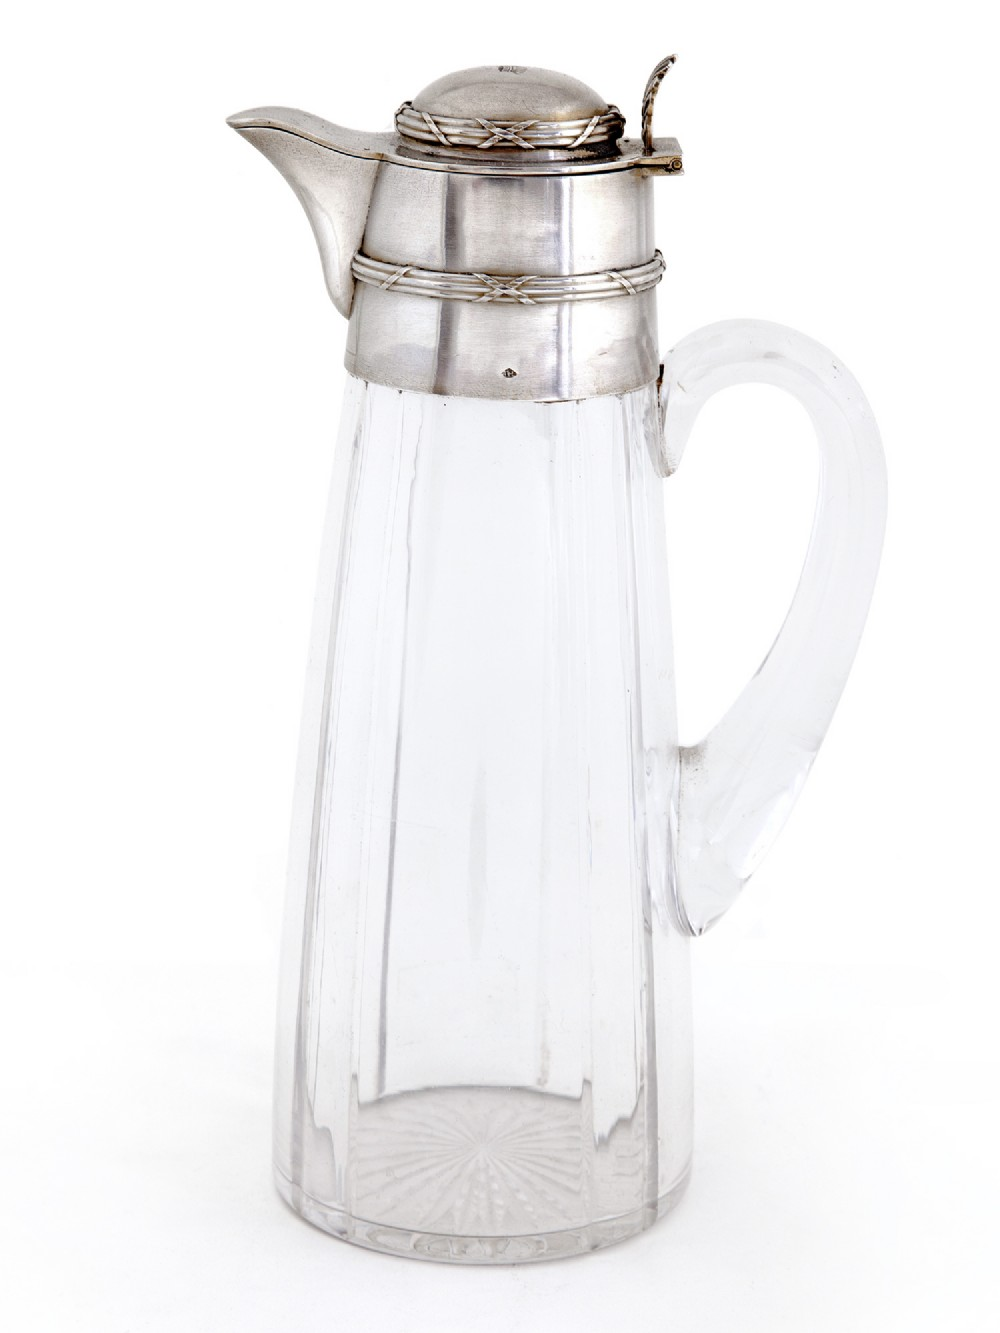 french silver mounted and glass claret jug with a hinged domed cover engraved with a coronet